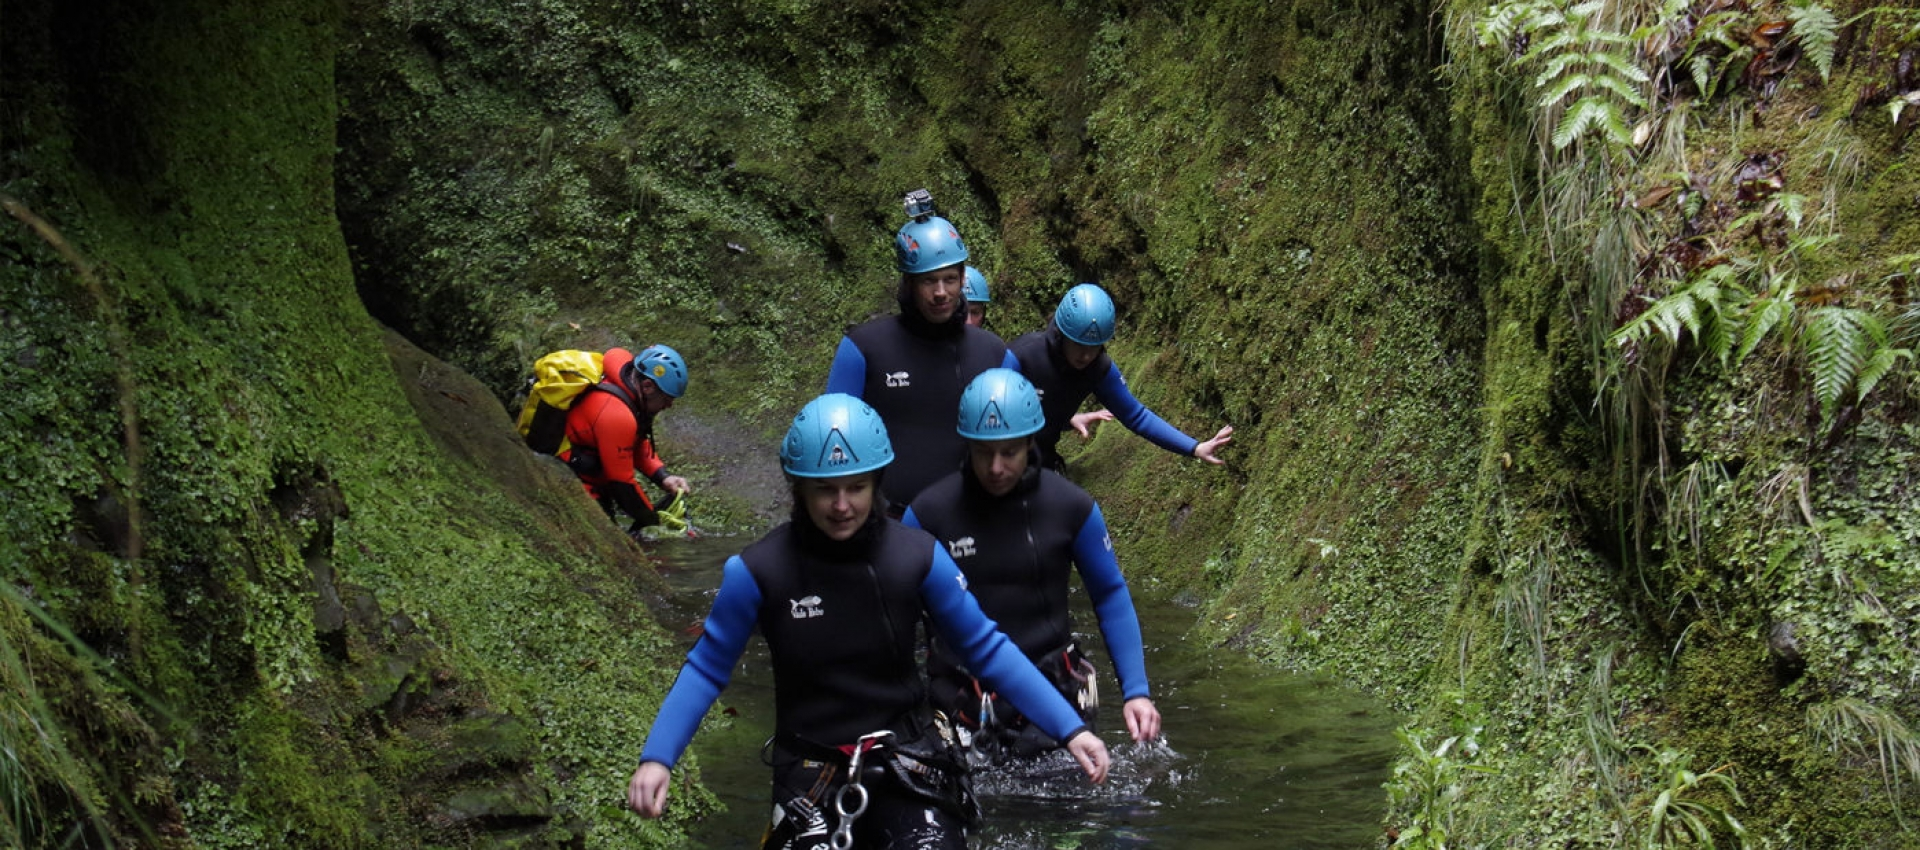 Canyoning on the north coast of Madeira